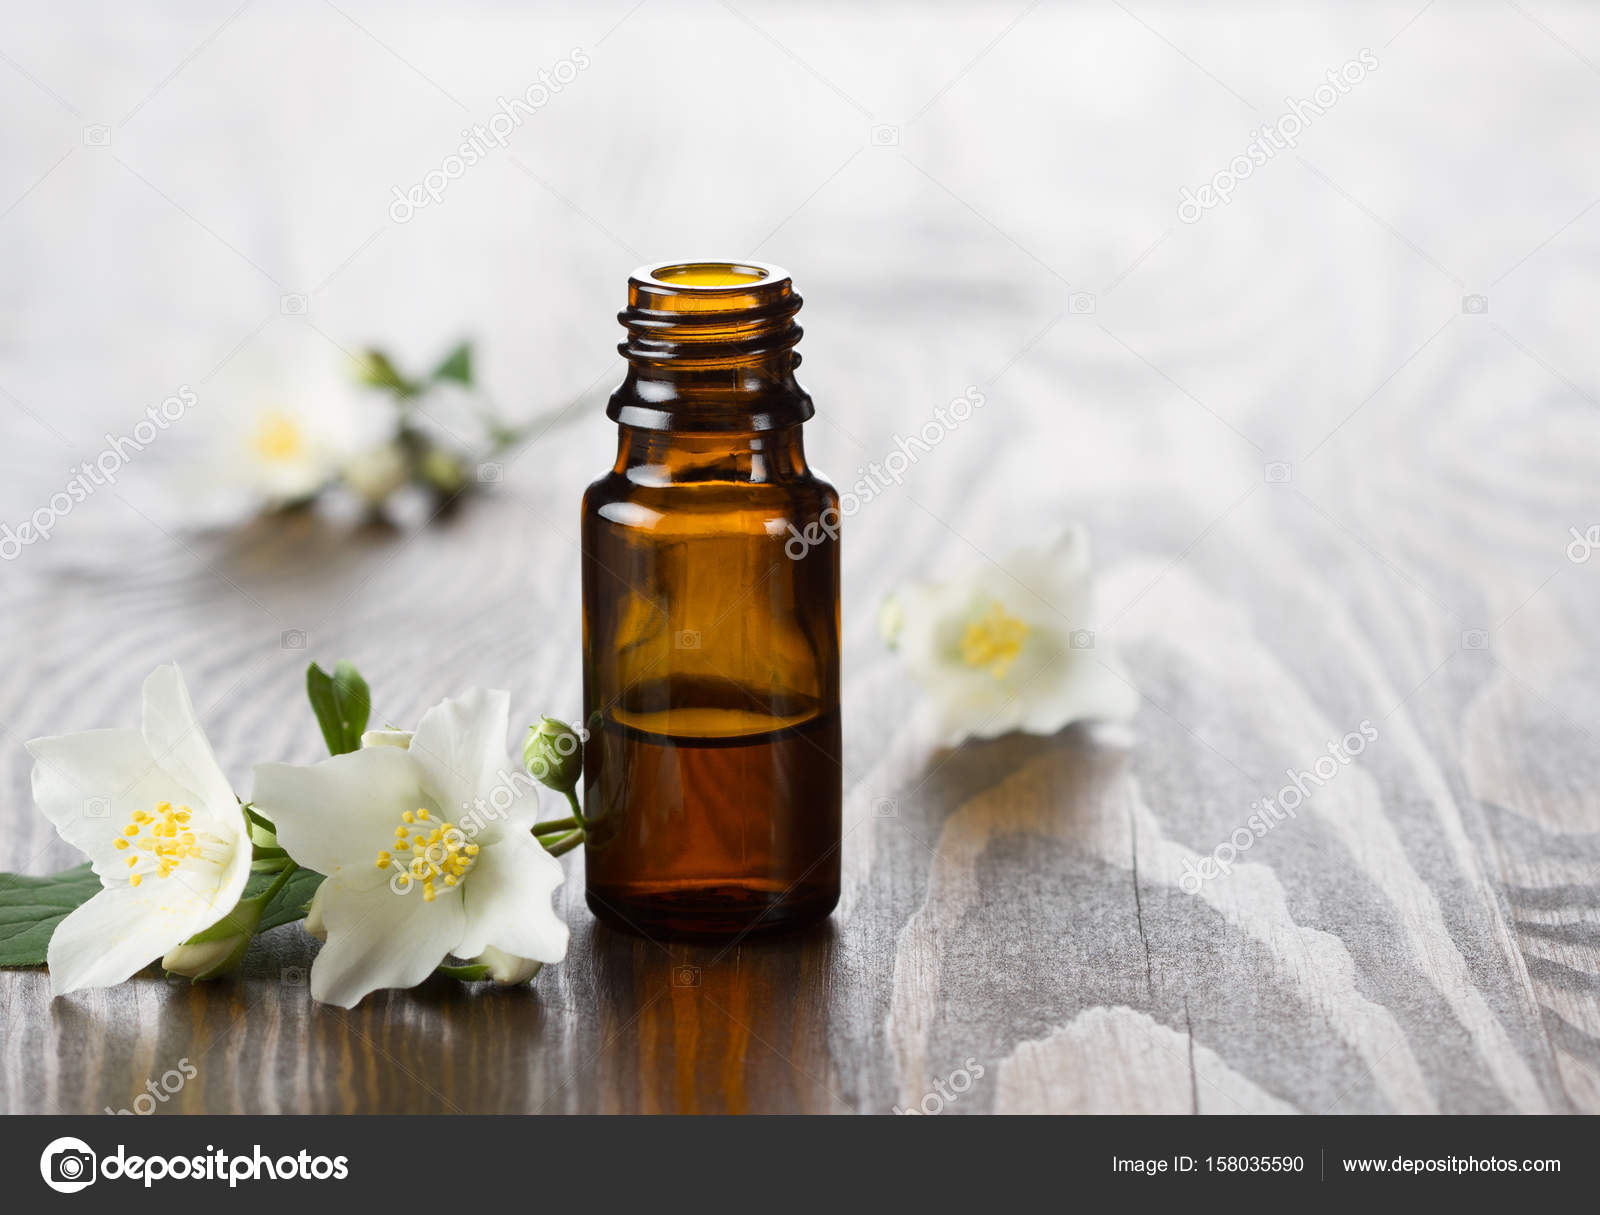 Jasmine essential oil and jasmine flowers stock photo colors06 jasmine essential oil and jasmine flowers stock photo izmirmasajfo